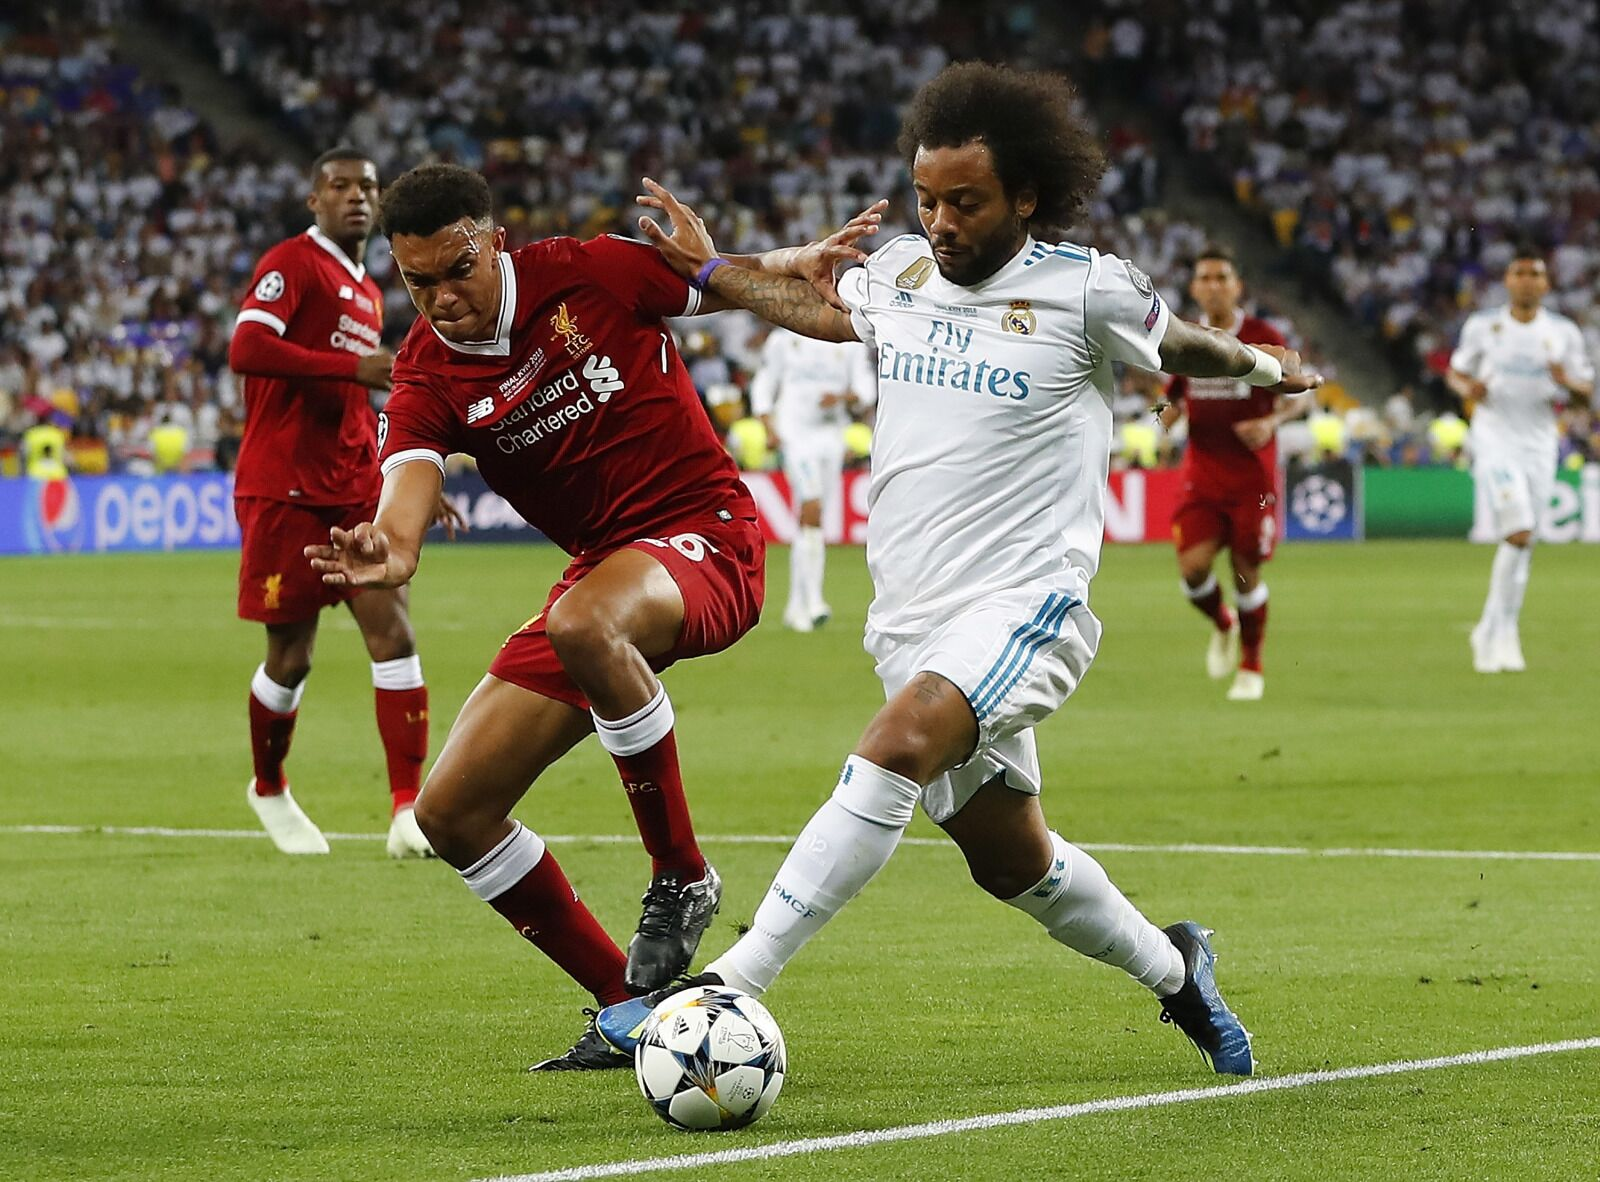 Liverpool and Real Madrid to square off in FIFA Club World Cup